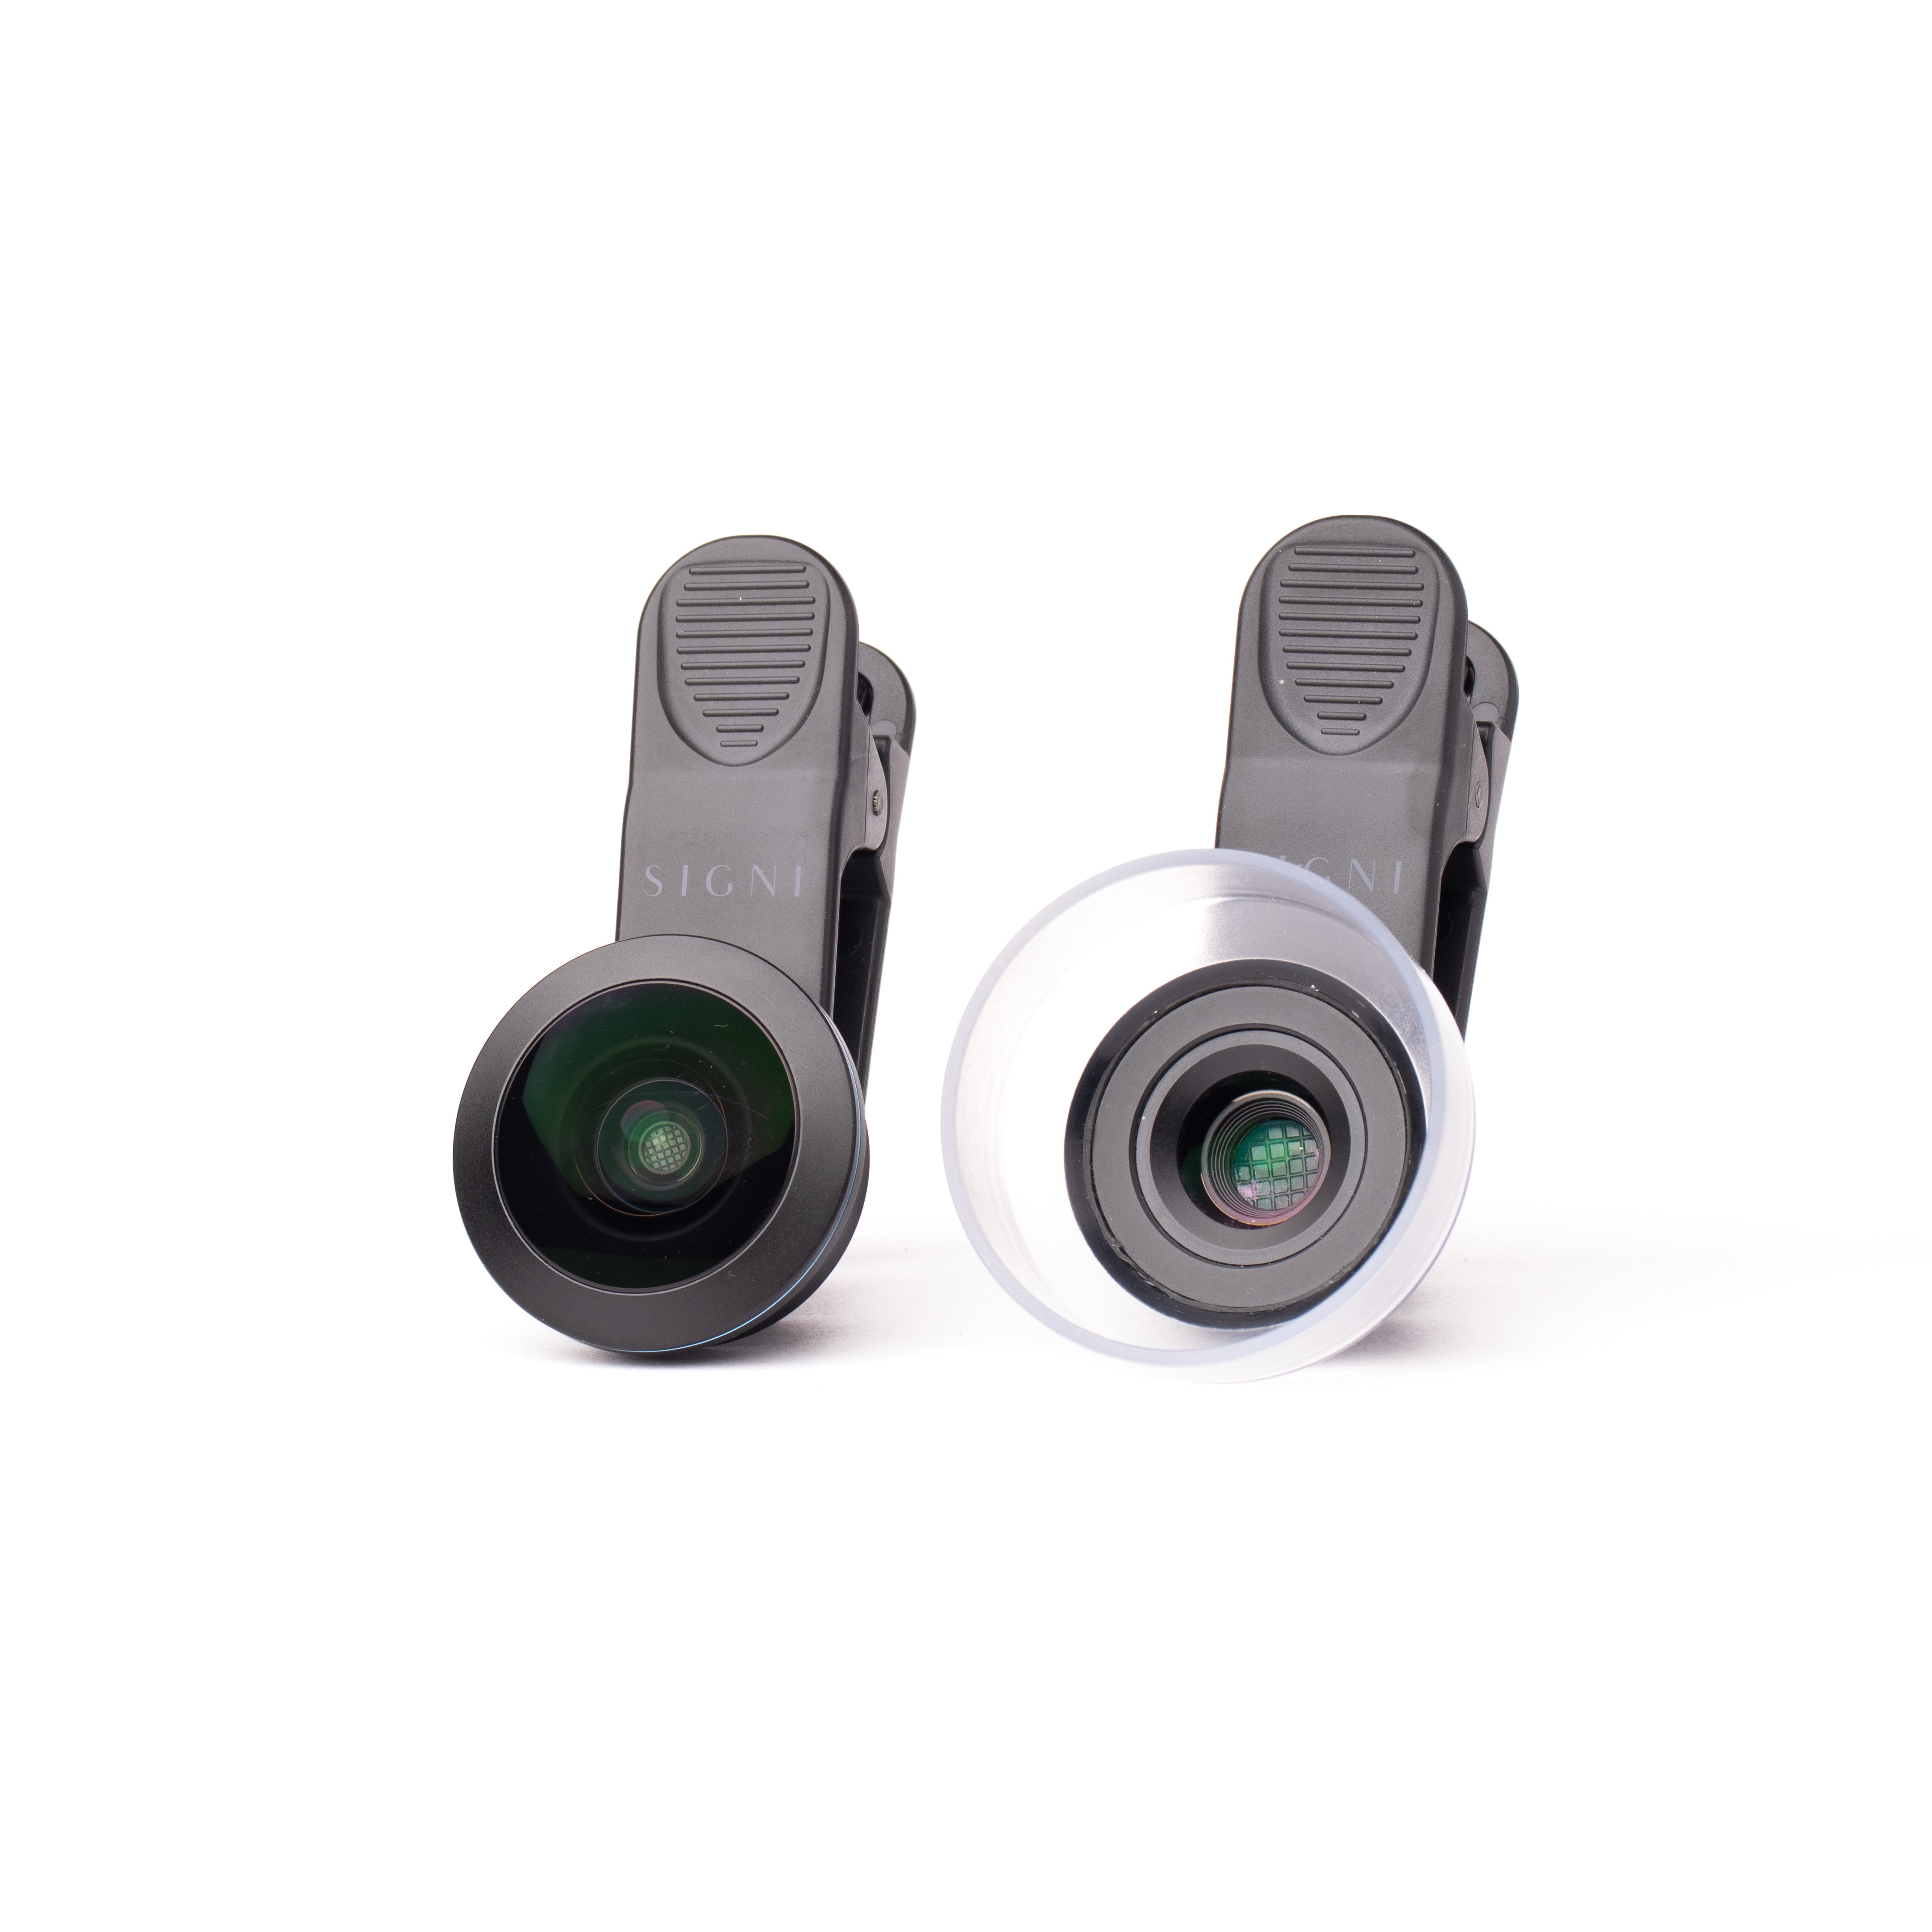 (COMBO) SIGNI ONE 25mm Macro Lens and SIGNI ONE 10mm Fish Eye lens